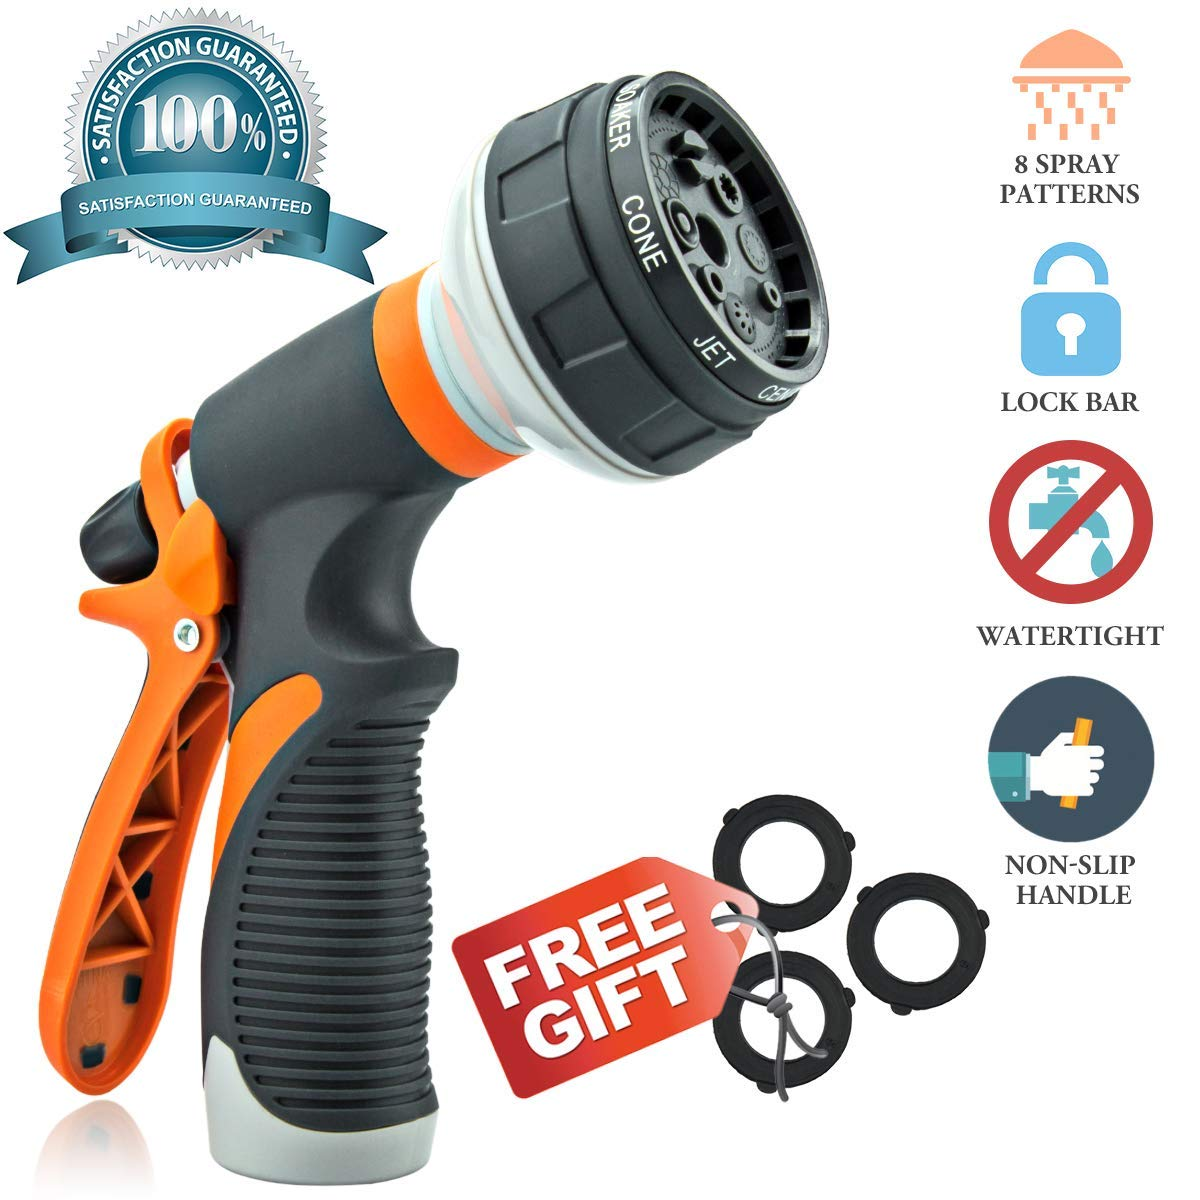 Hose Nozzle Garden Hose Nozzle Hose Spray Nozzle Heavy Duty High Pressure Leak Free 8 Pattern for Pets Shower Watering Plant Washing Cars